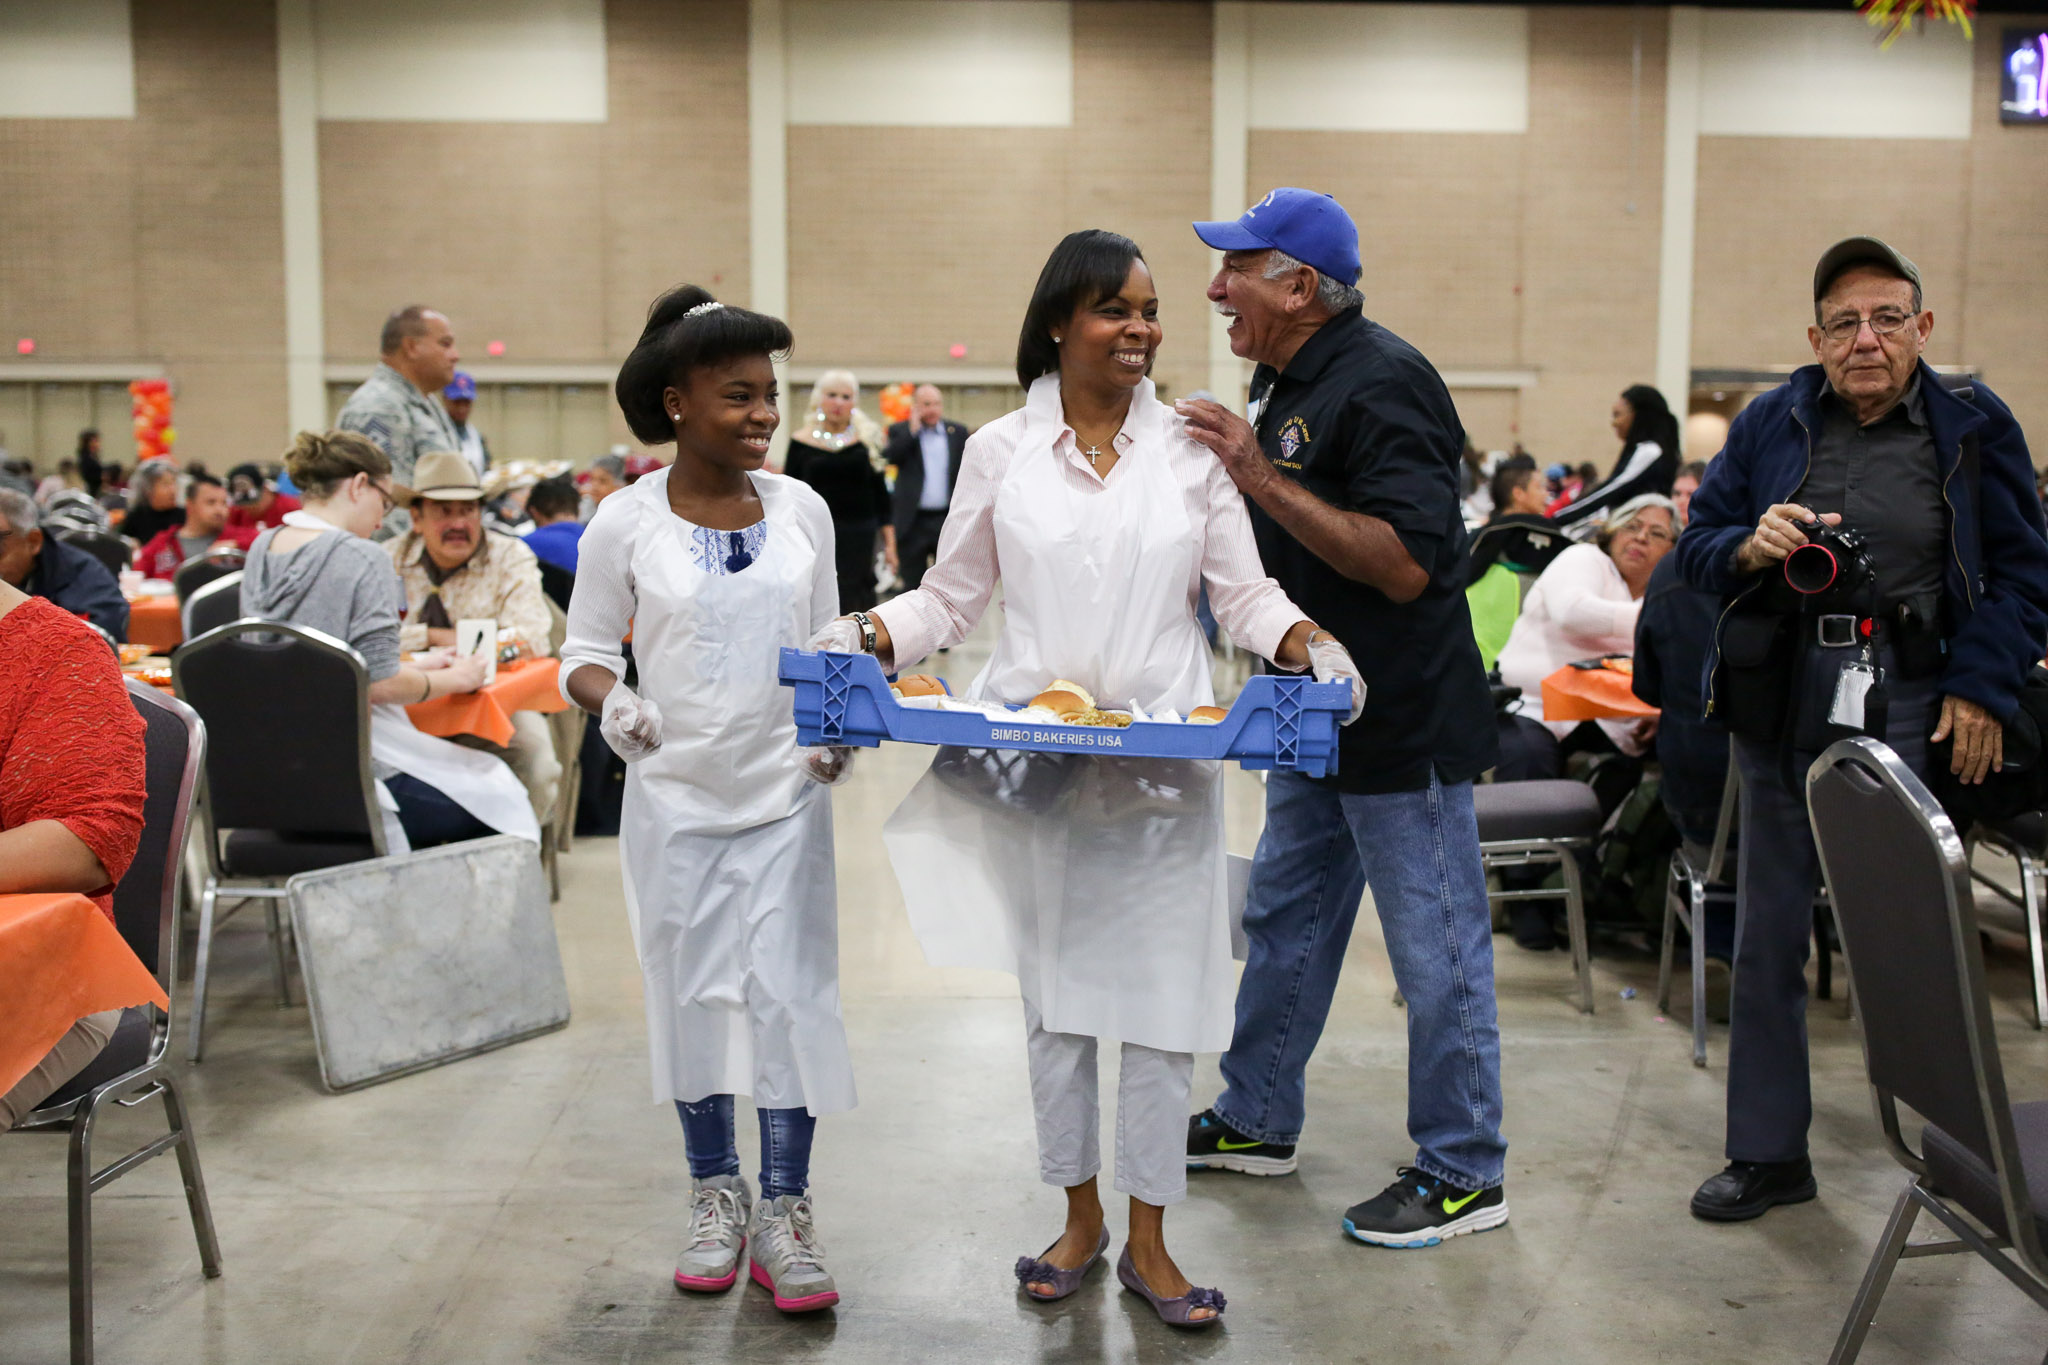 Mayor Ivy Taylor and her daughter Morgan smile as they are greeted by patrons of the Raul Jimenez Thanksgiving Dinner.